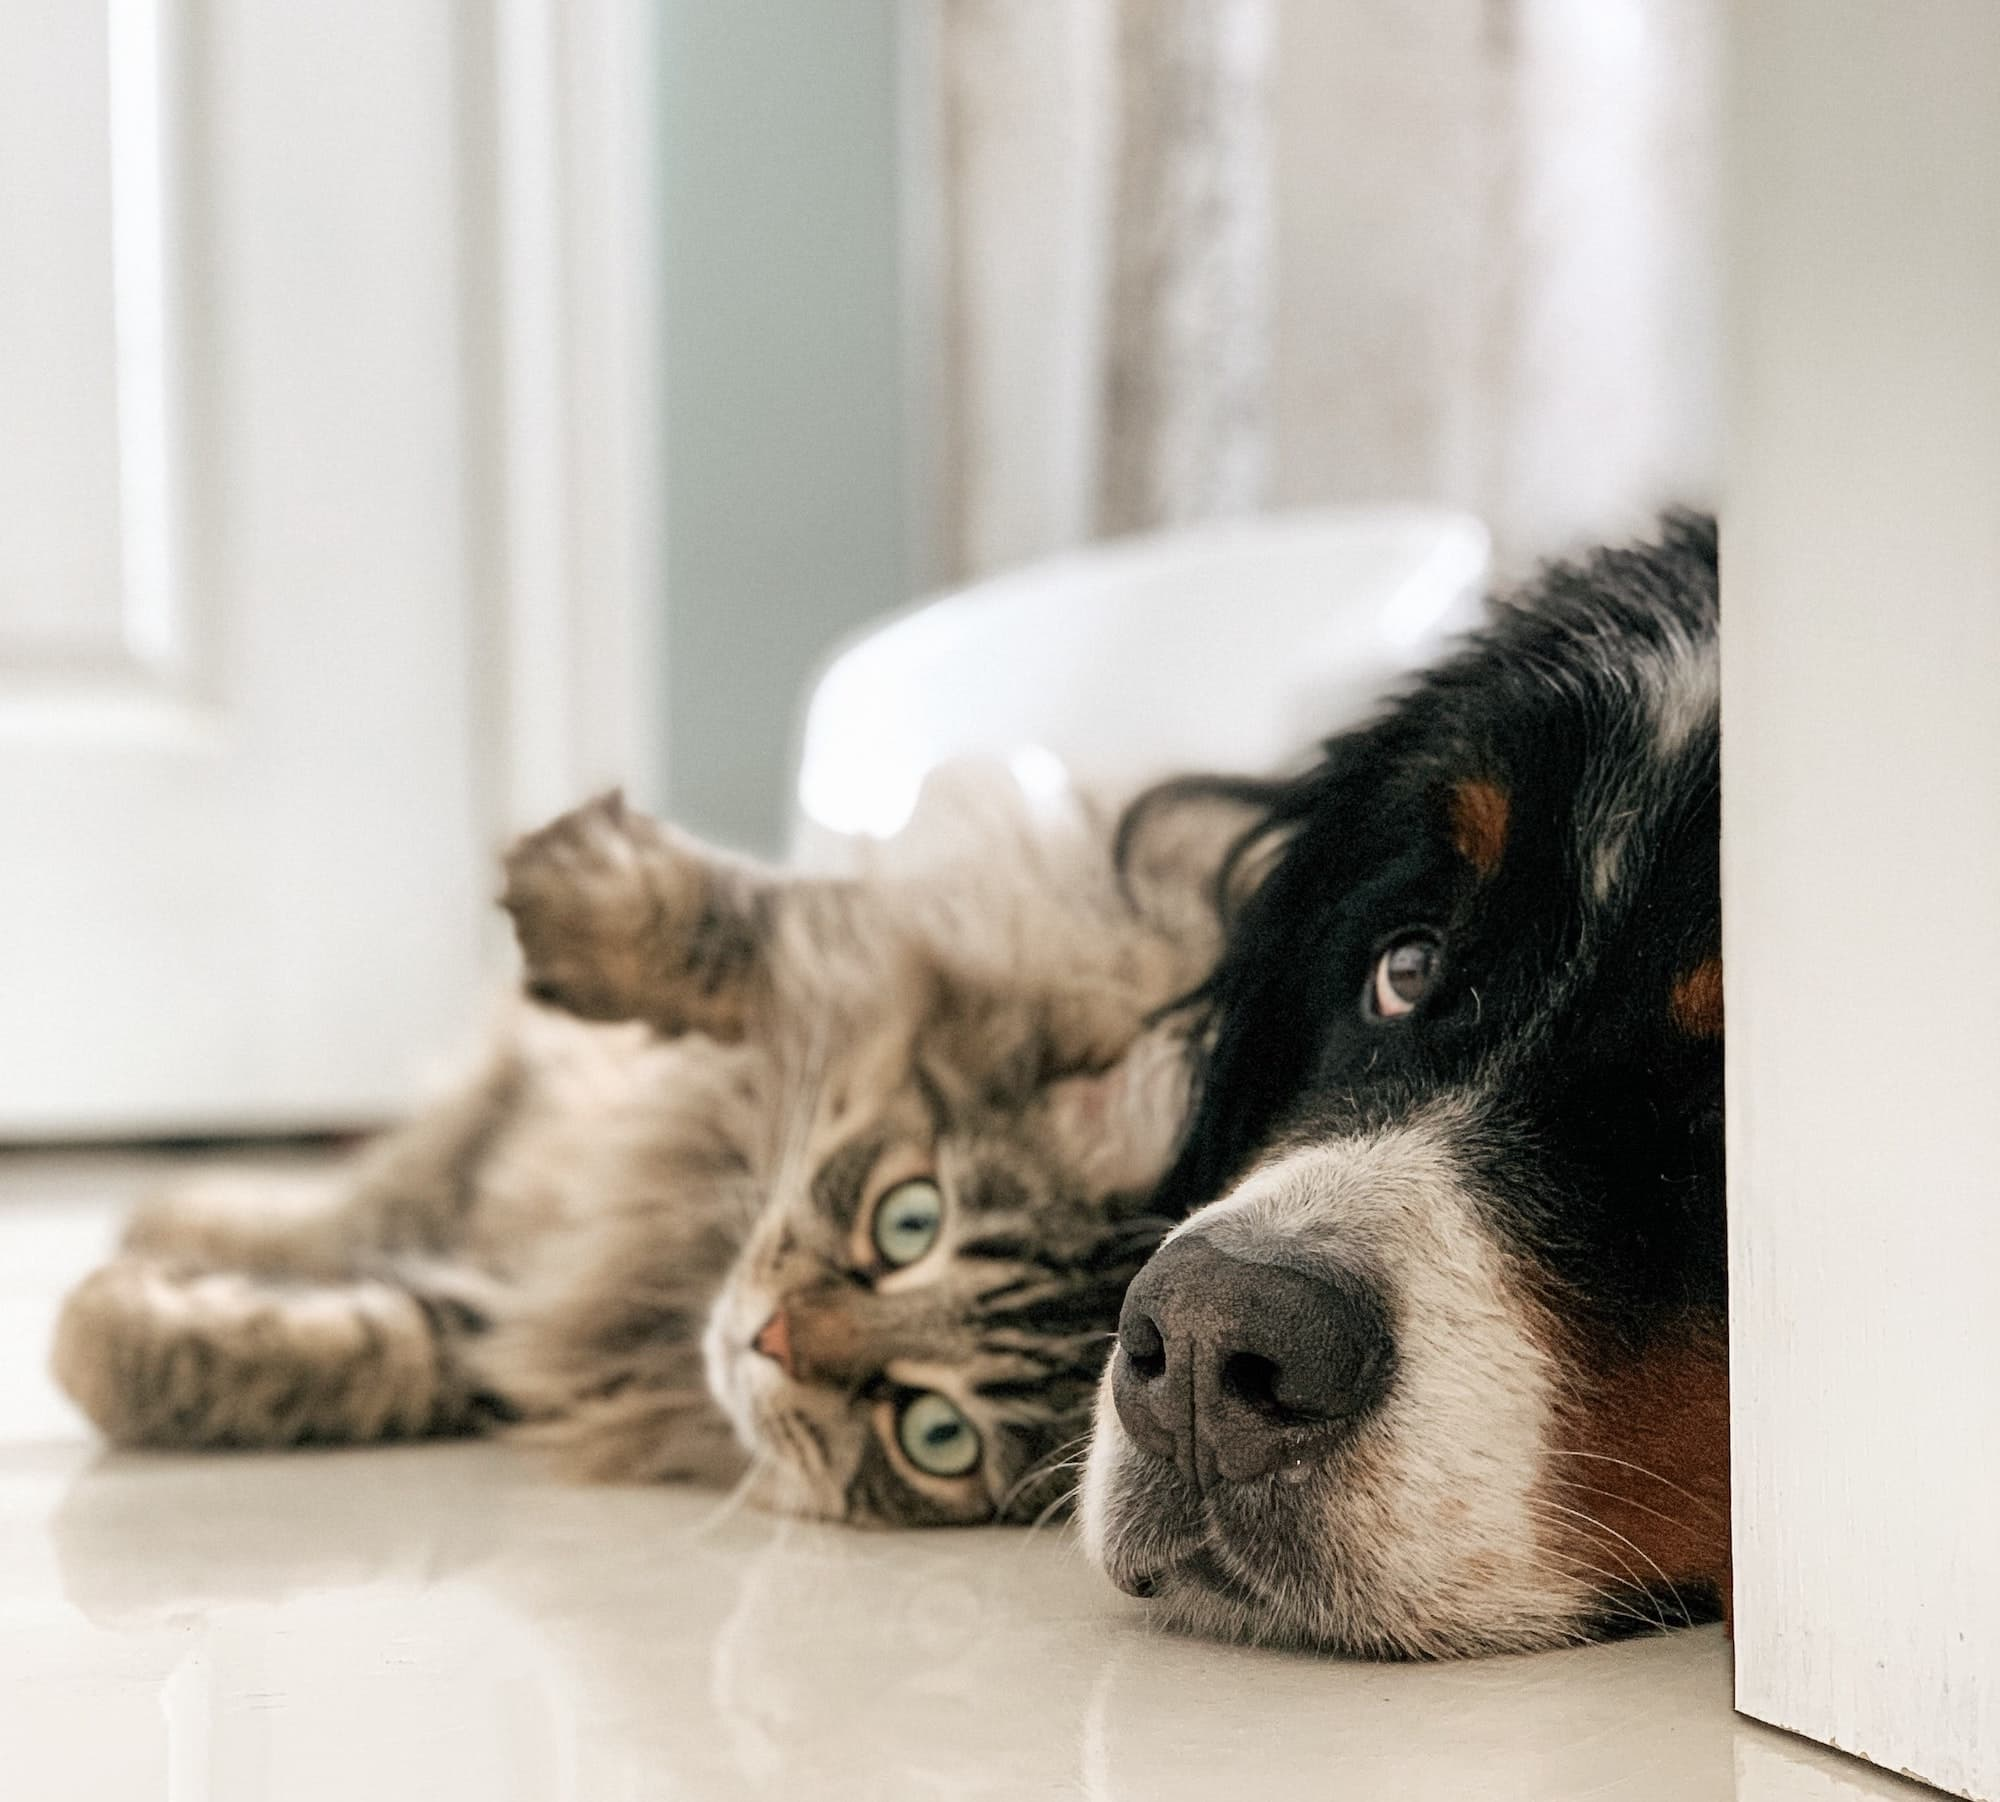 A cat and dog cuddle up indoors